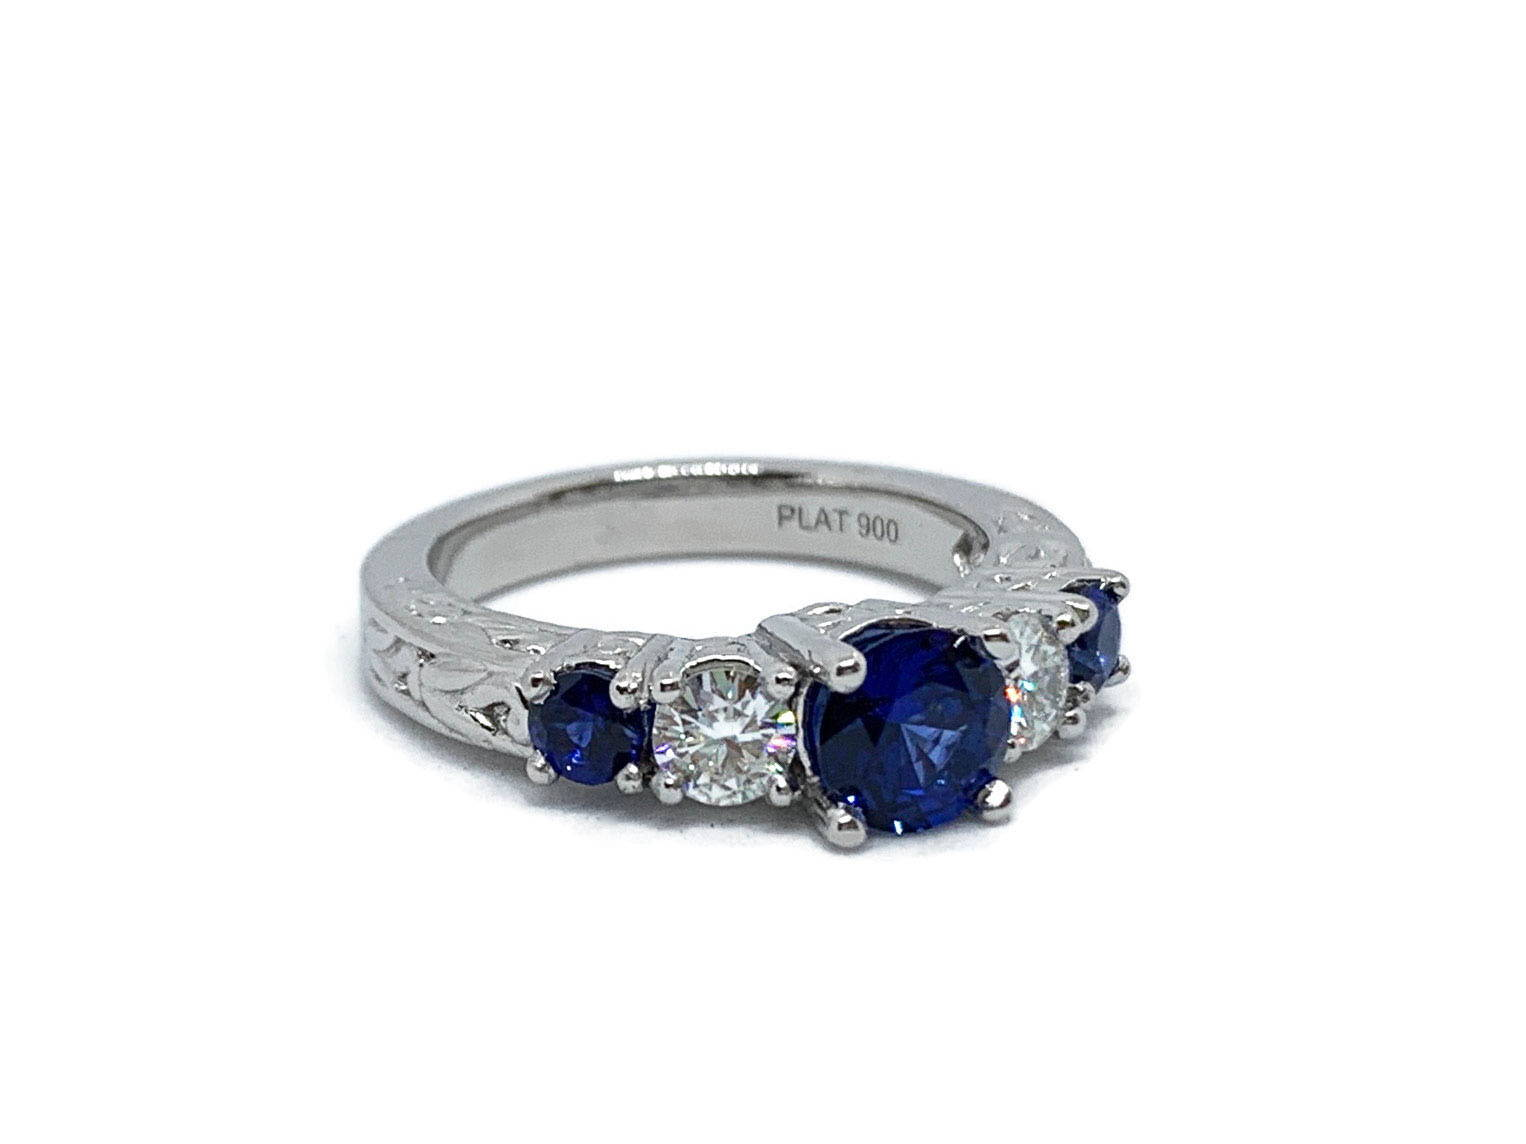 Sapphire and Moissanite Platinum Engagement Ring